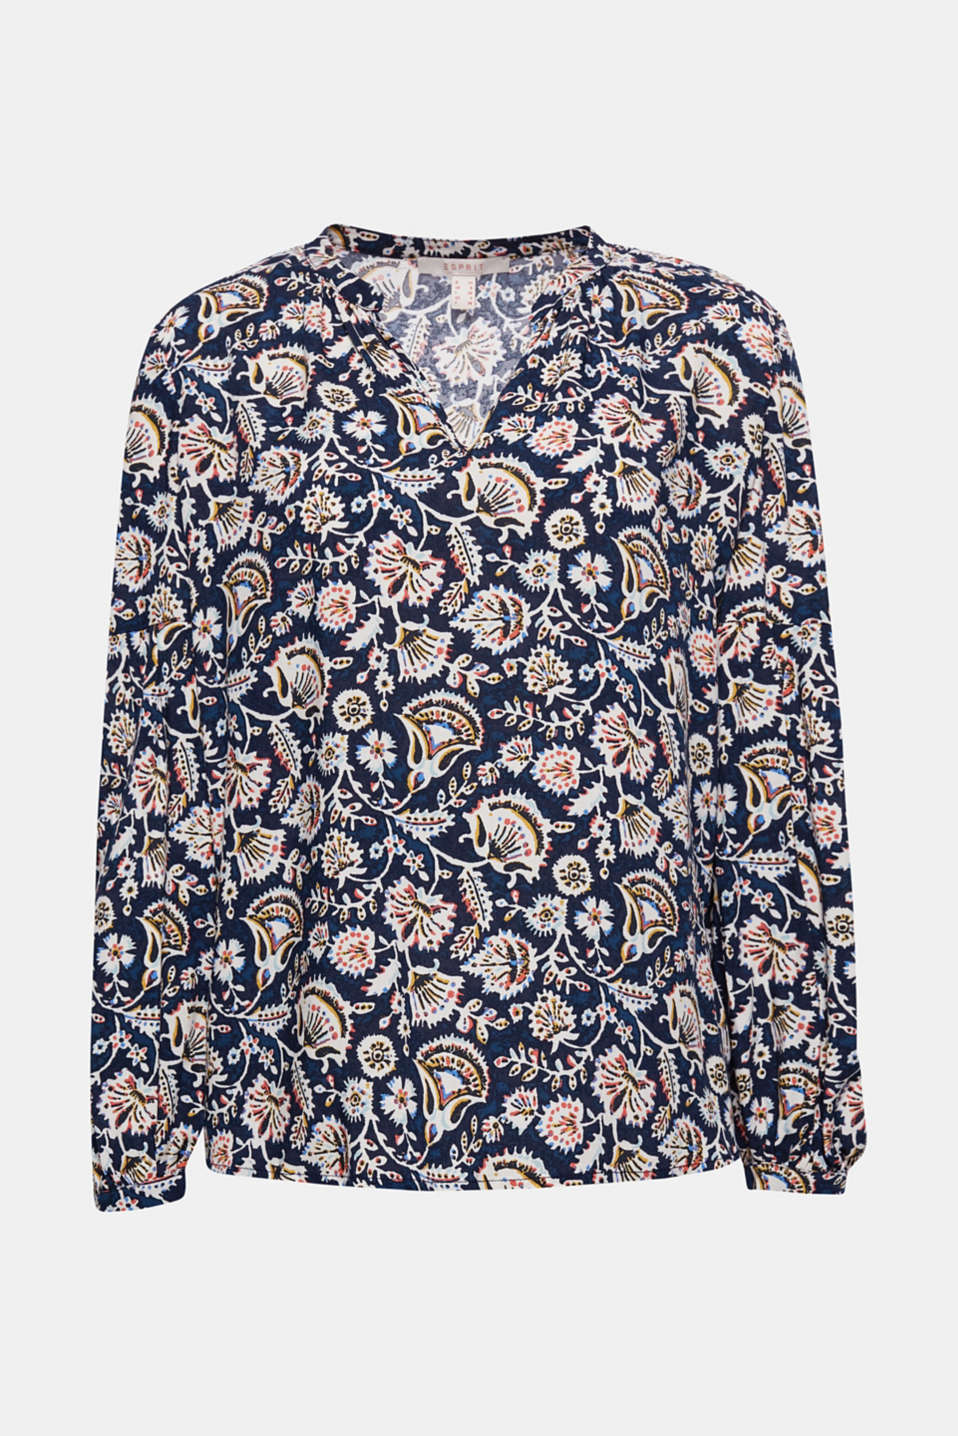 Fashionable balloon sleeves and a decorative all-over print give this Henley blouse its trendy style!